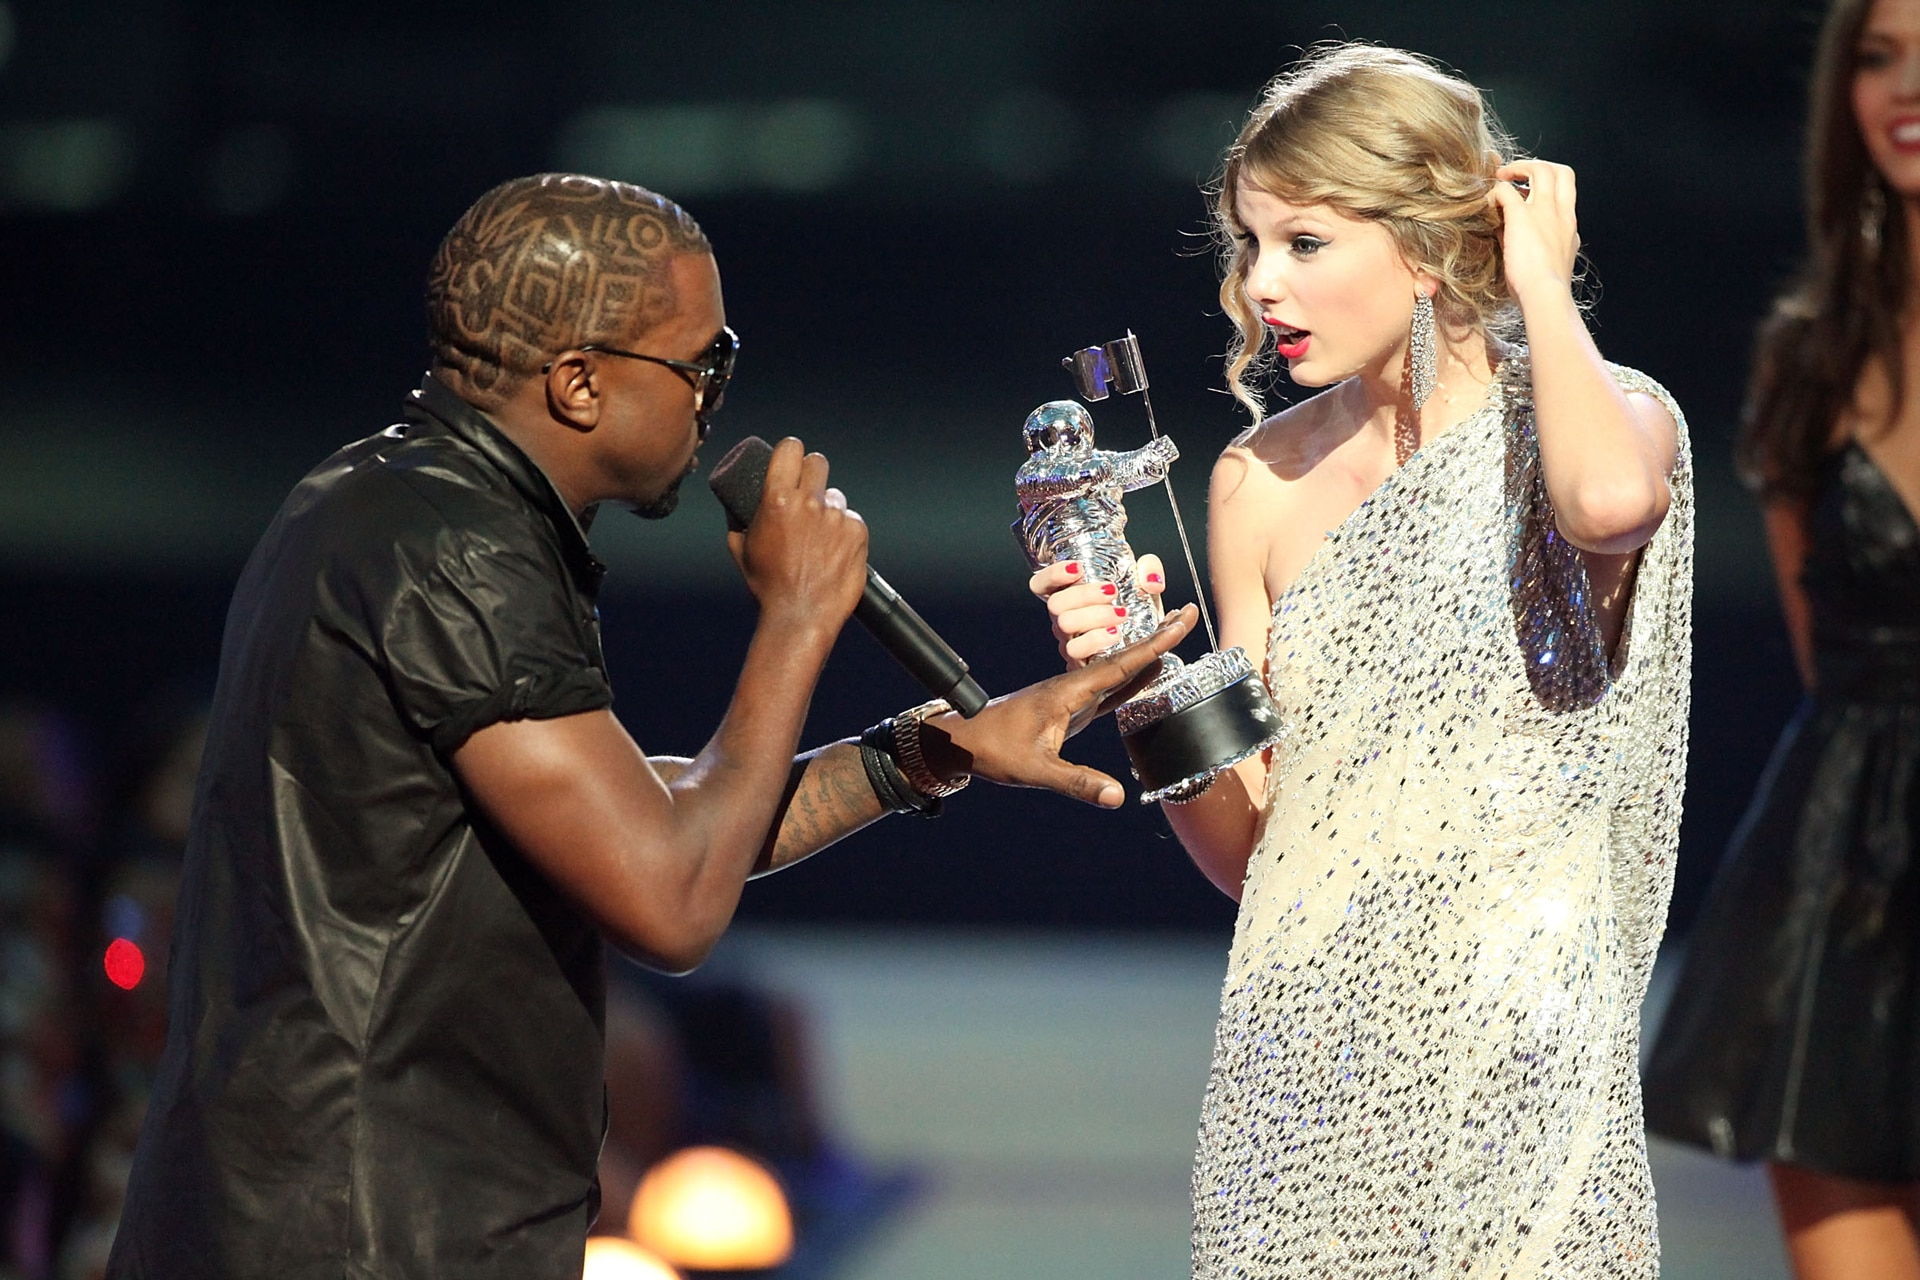 Taylor Swift may have just reignited her feud with Kanye West